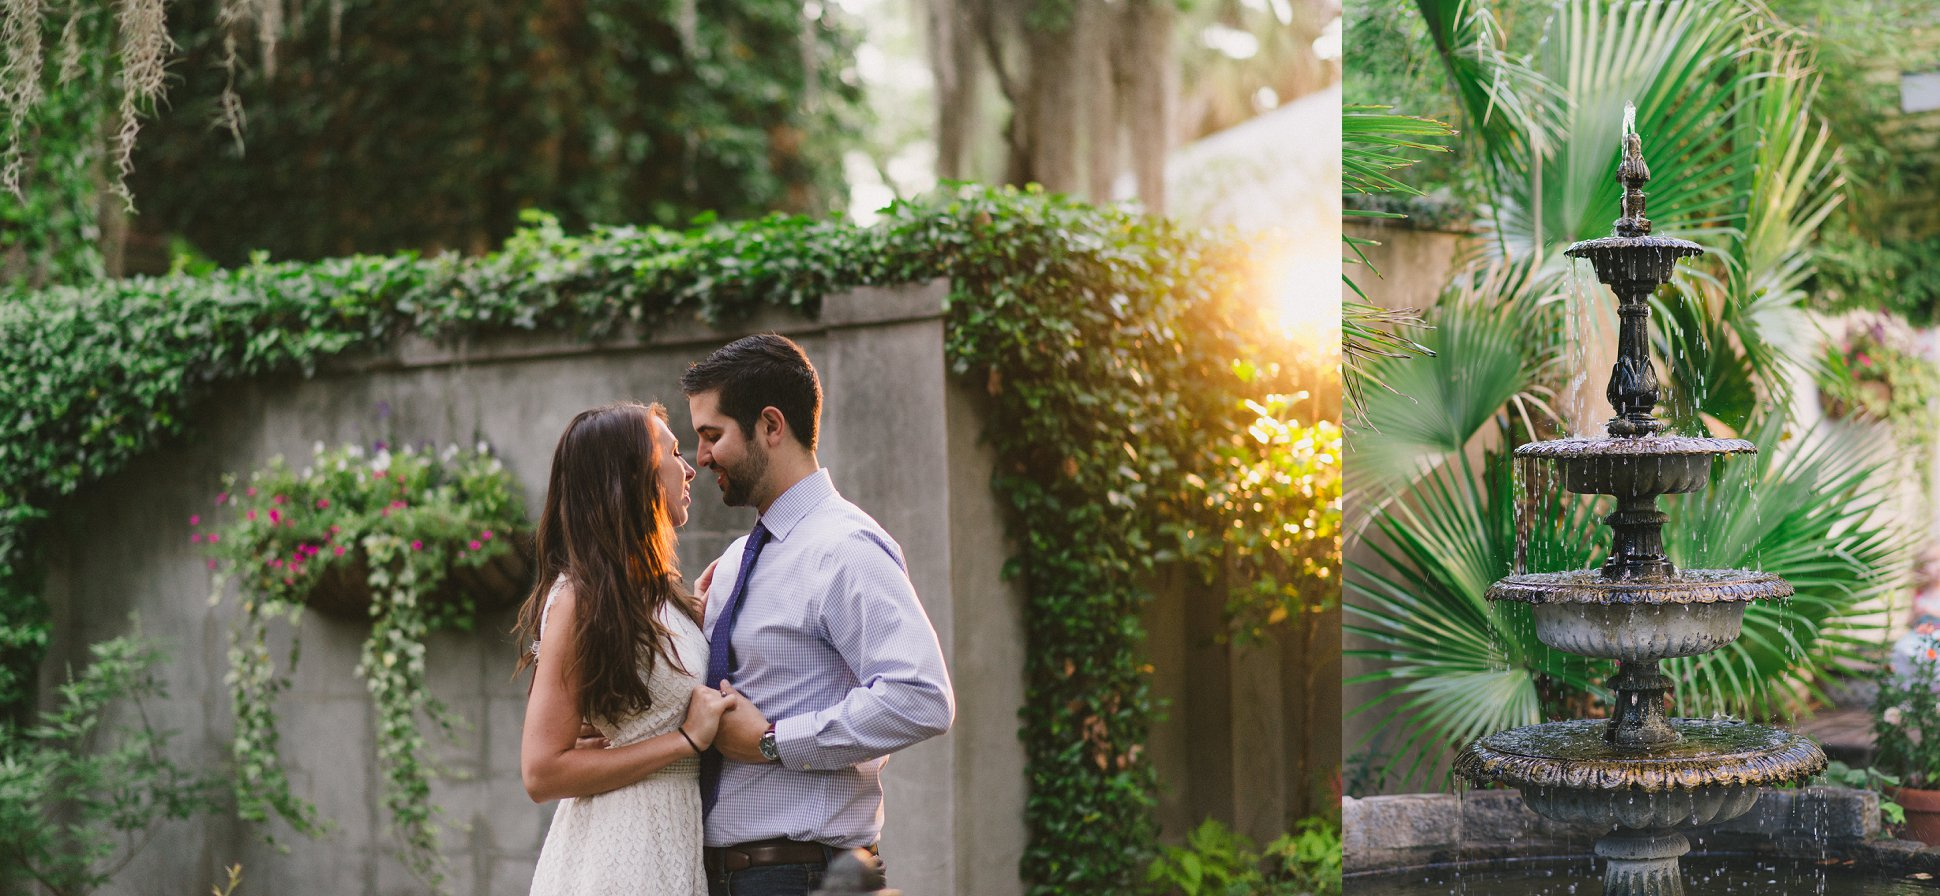 Savannah GA Wedding, savannah wedding photographer, forsyth park inn, forsyth park